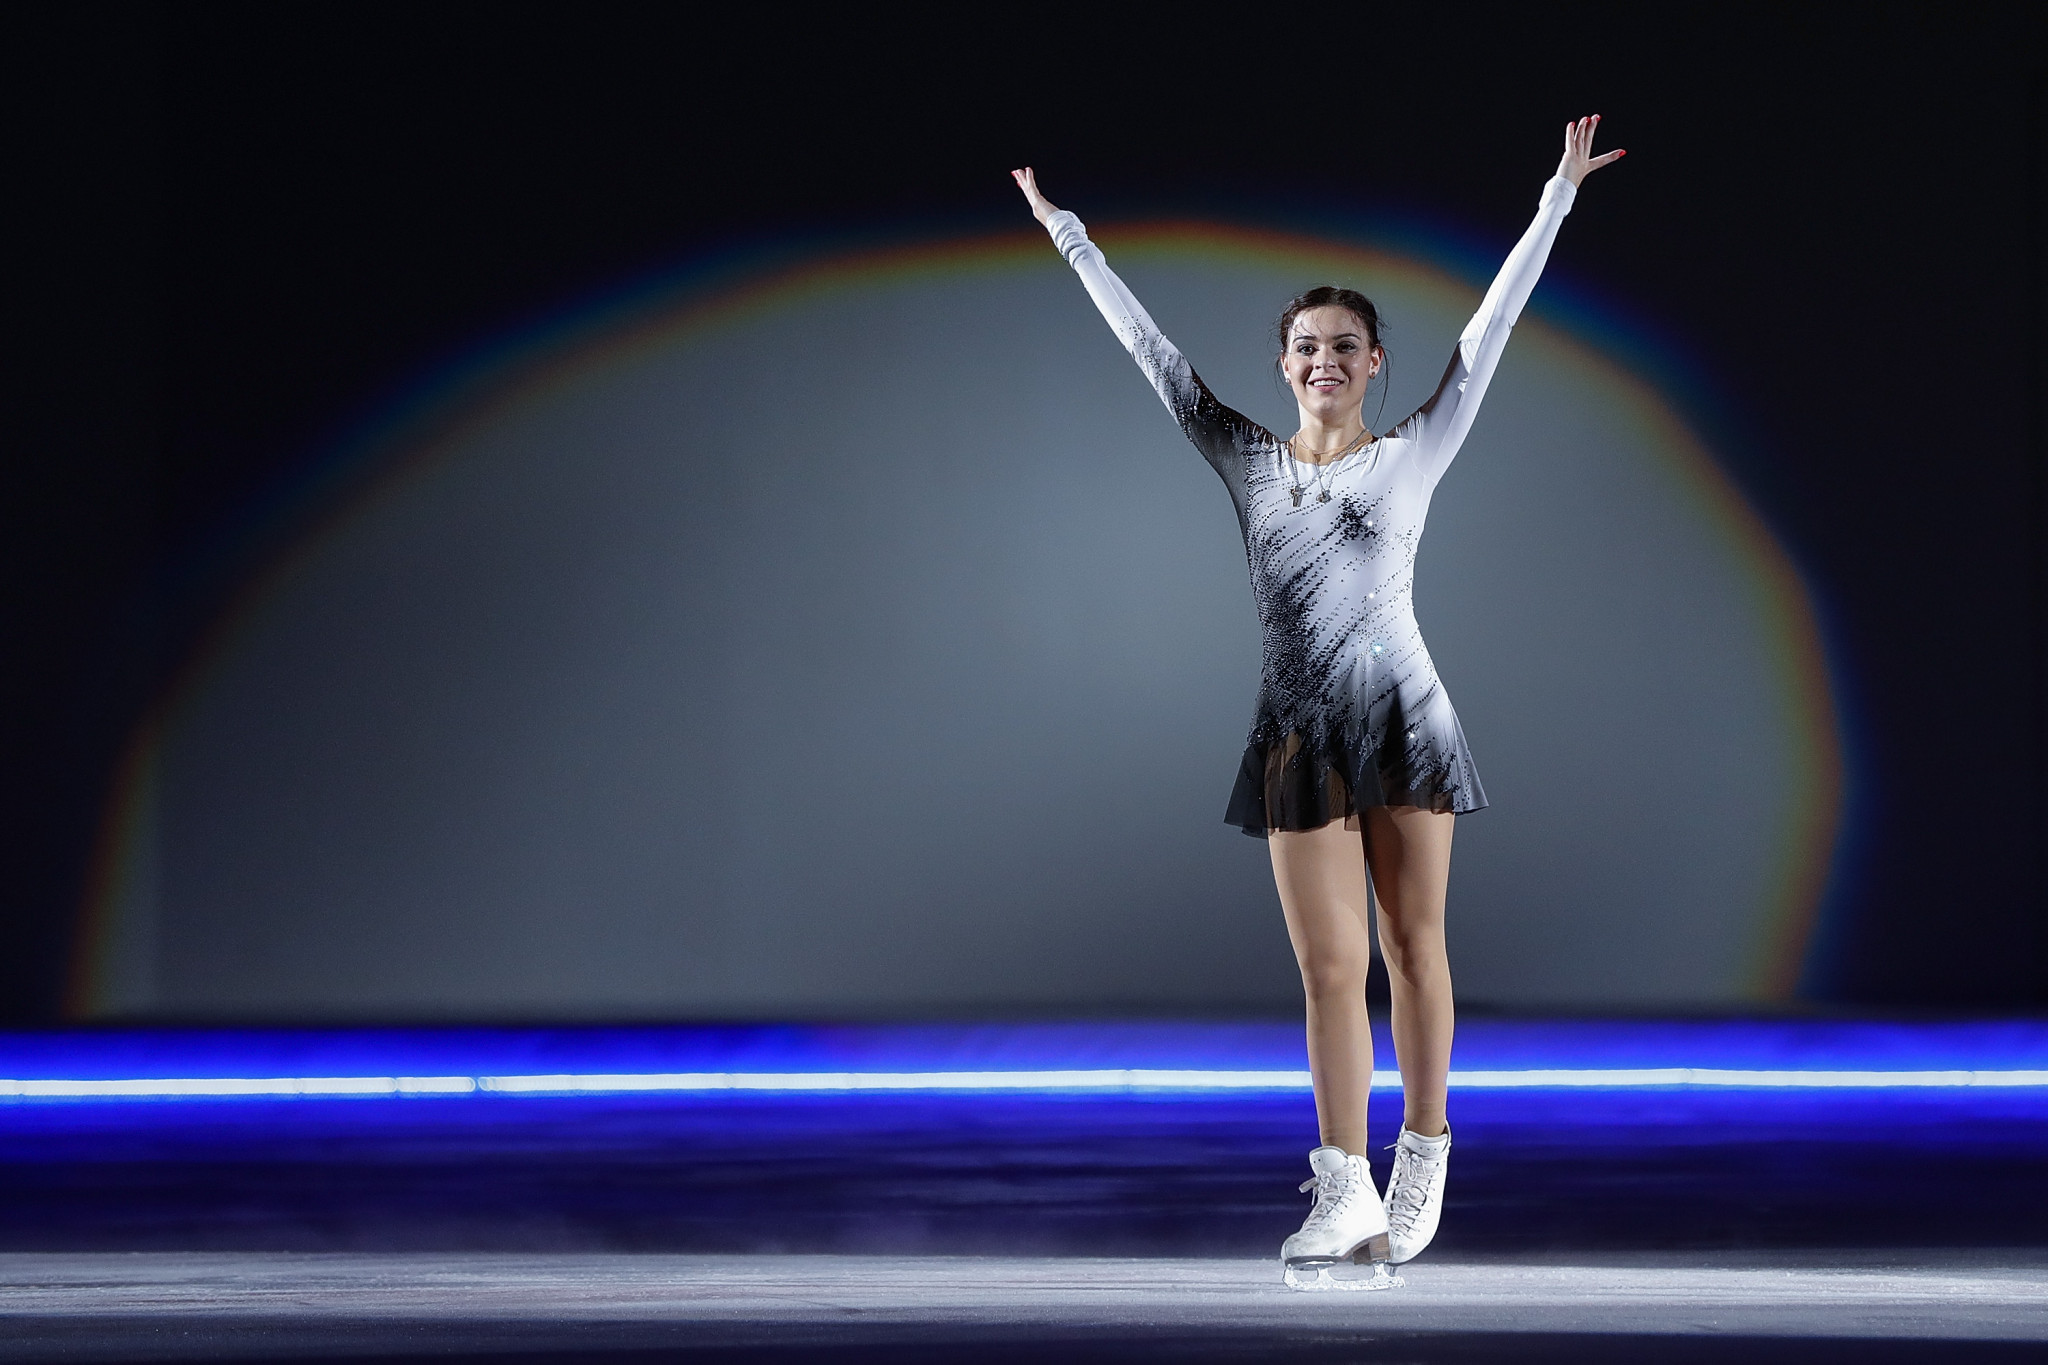 Sochi 2014 Winter Olympic champion Adelina Sotnikova has been revealed as a victim of a fortune-telling scam ©Getty Images